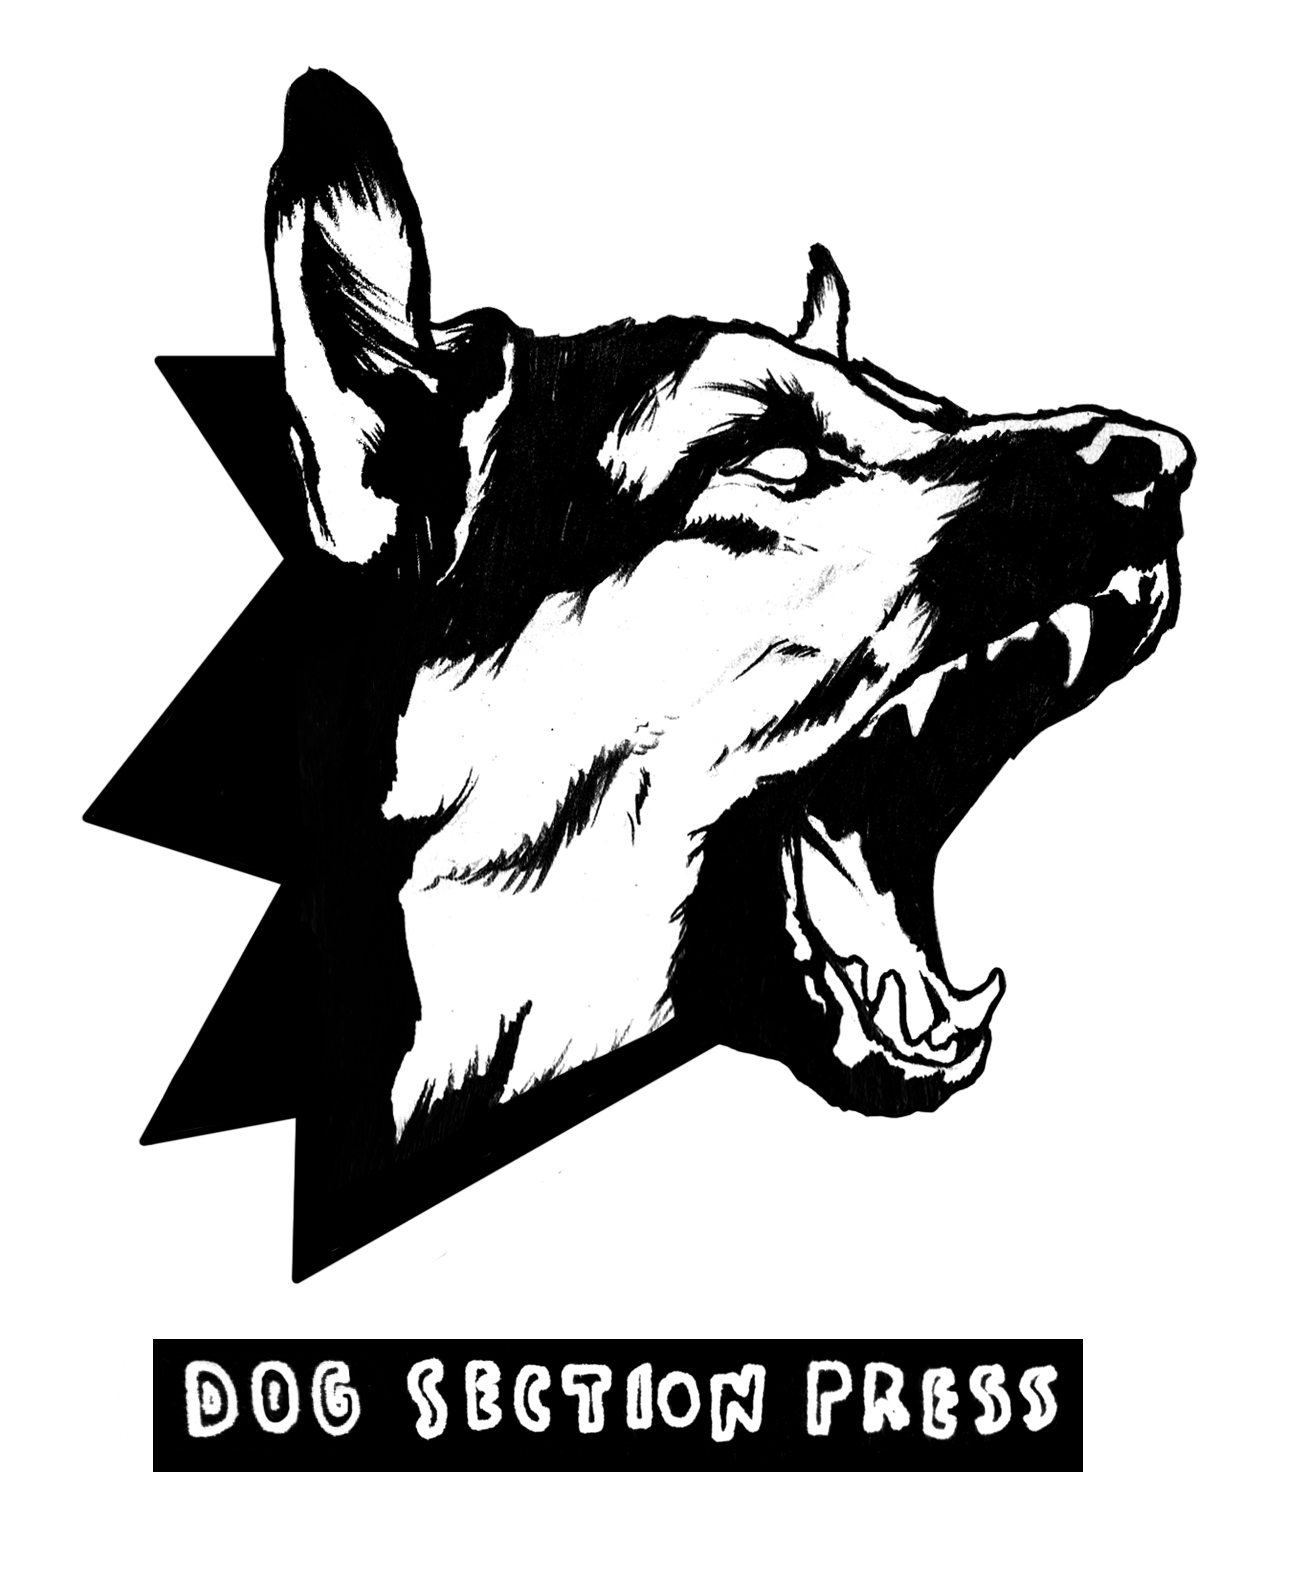 Dog Section Press